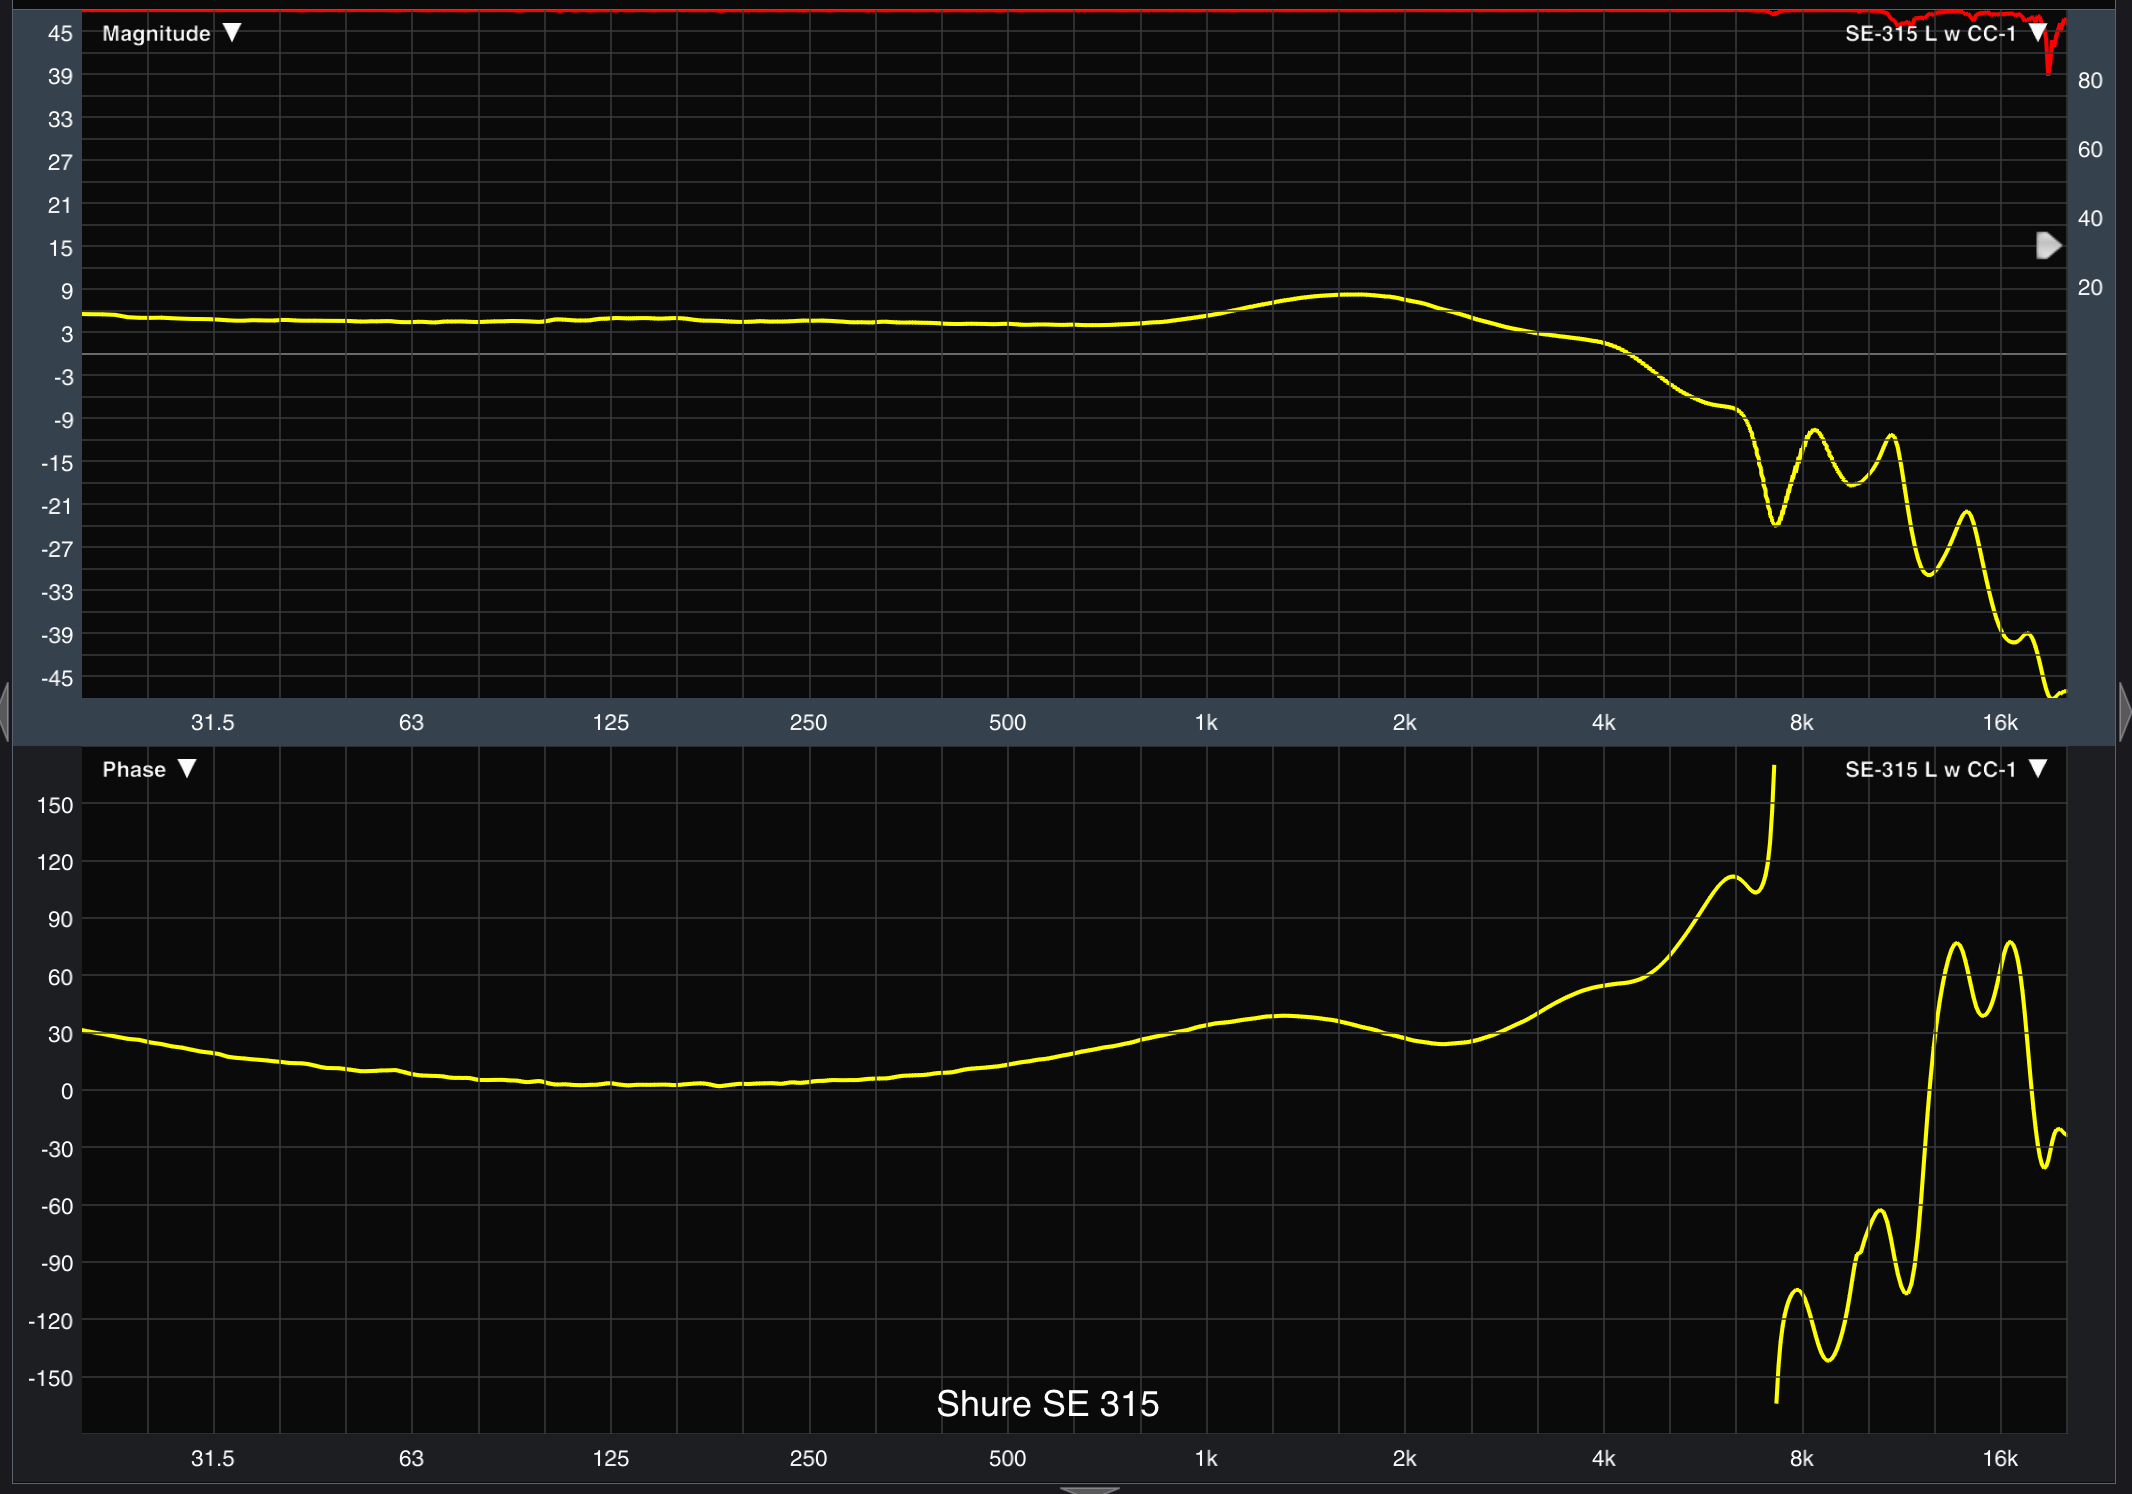 Shure SE315 frequency response